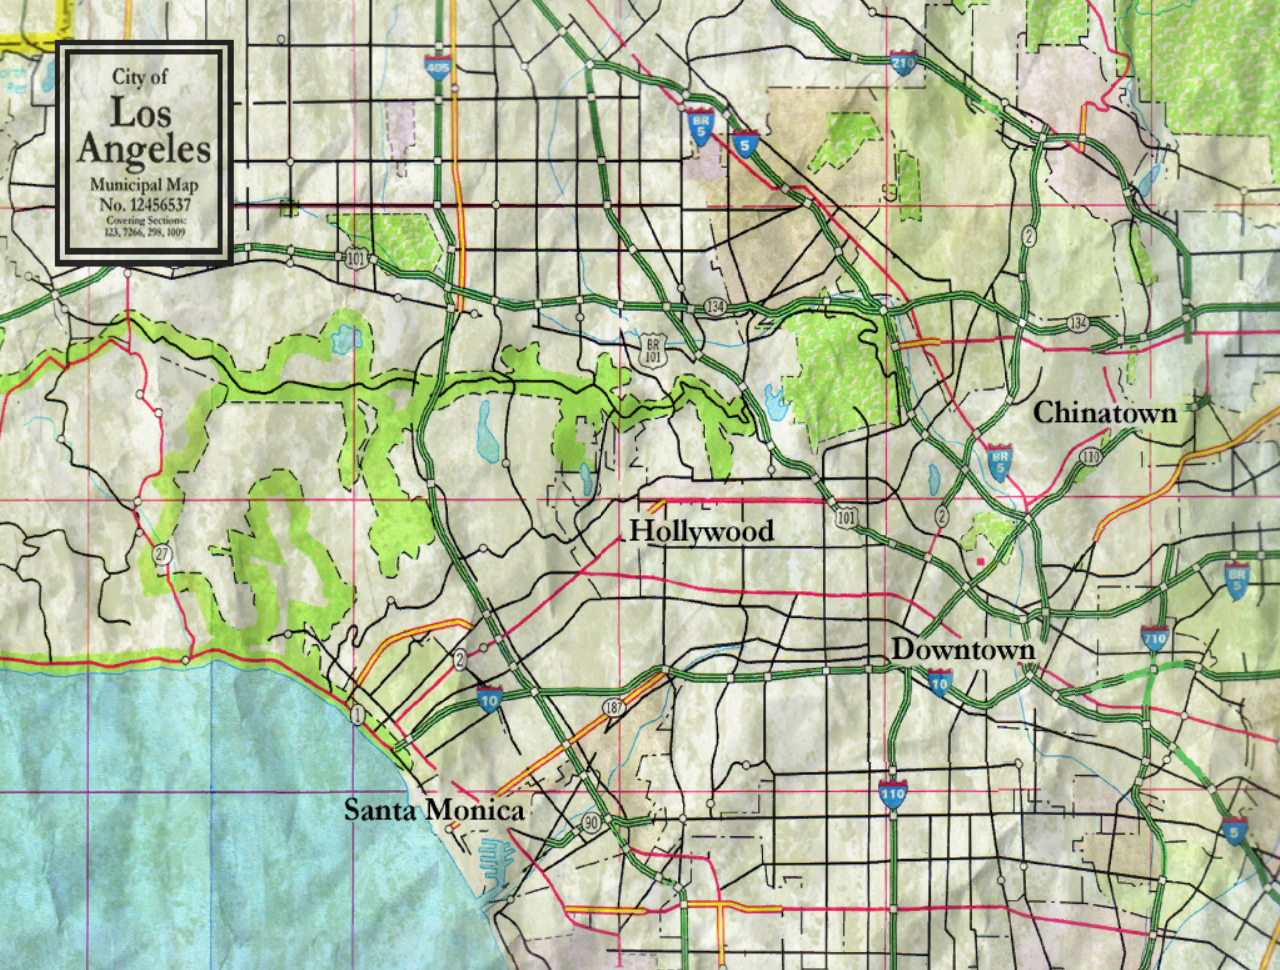 Los Angeles Vampire The Masquerade  Bloodlines Wiki FANDOM - Los angeles geography map